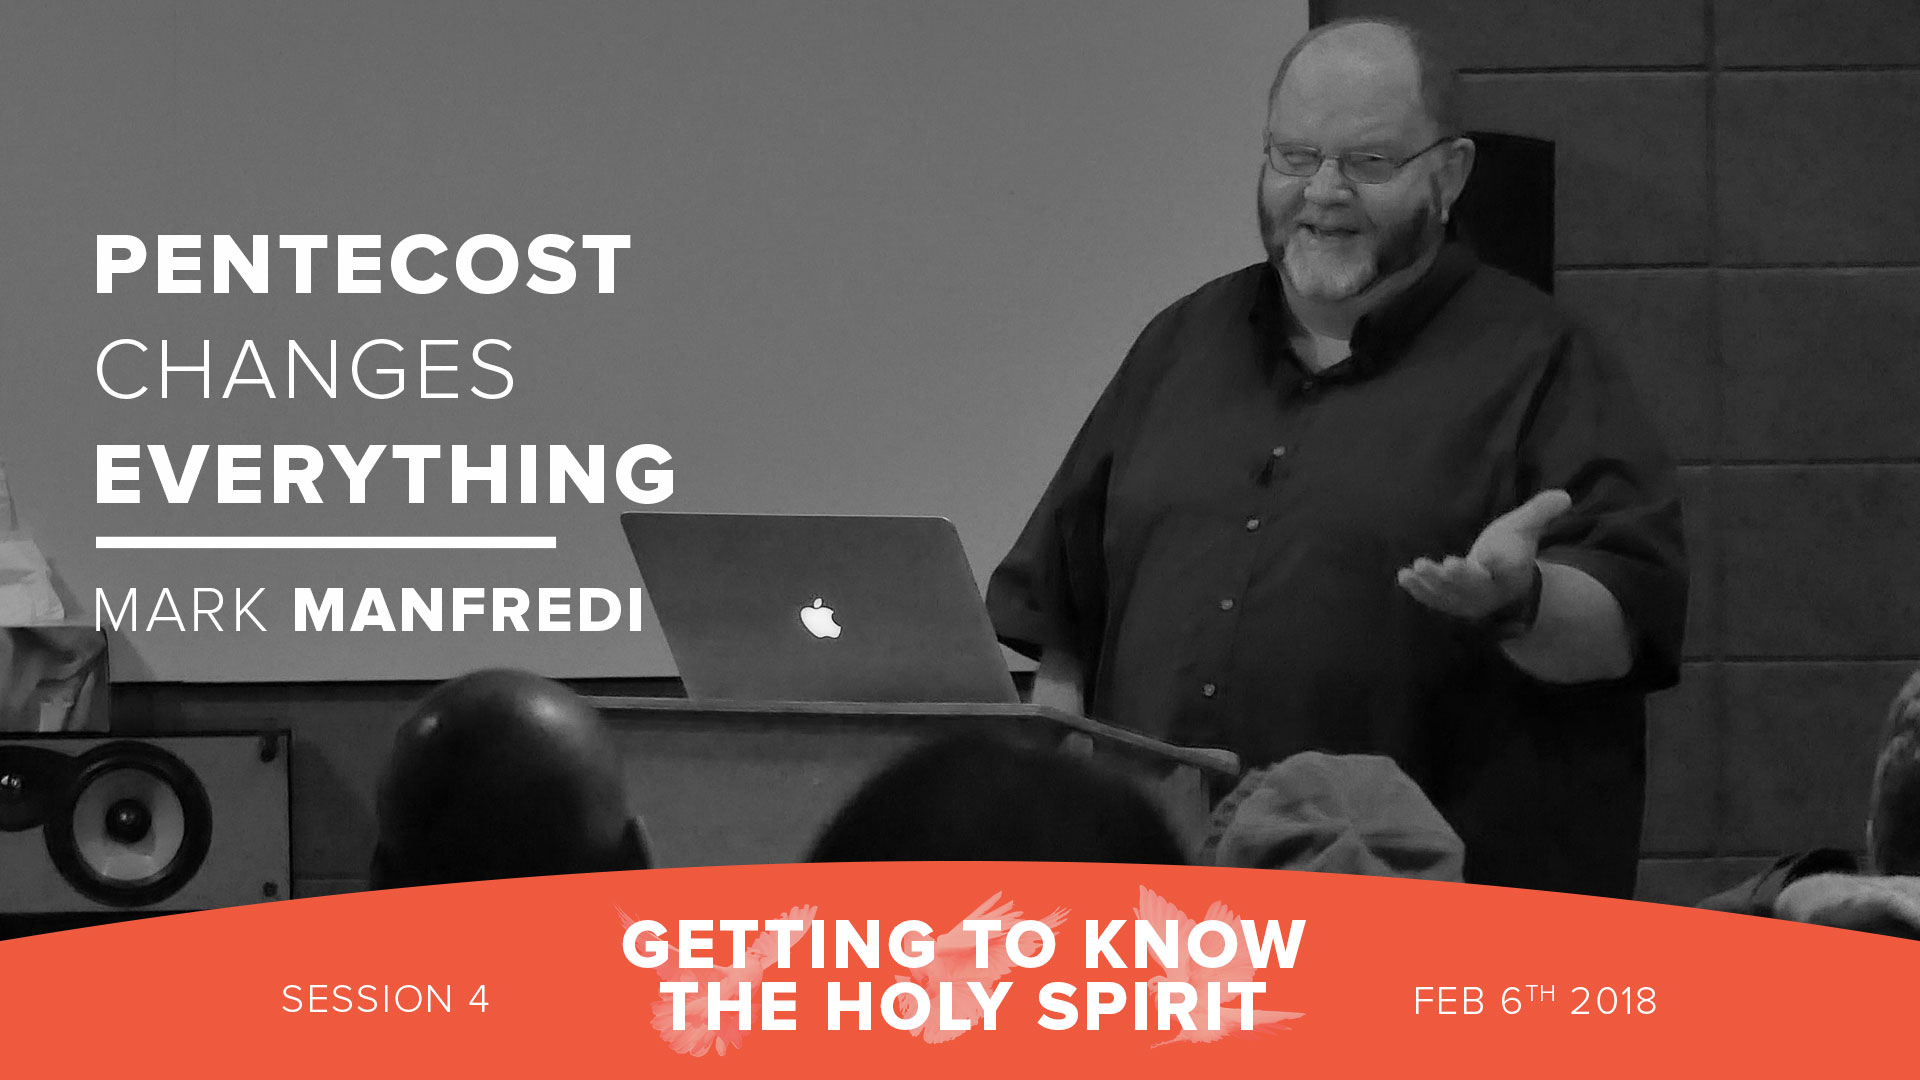 Session 4 - Pentecost Changes Everything